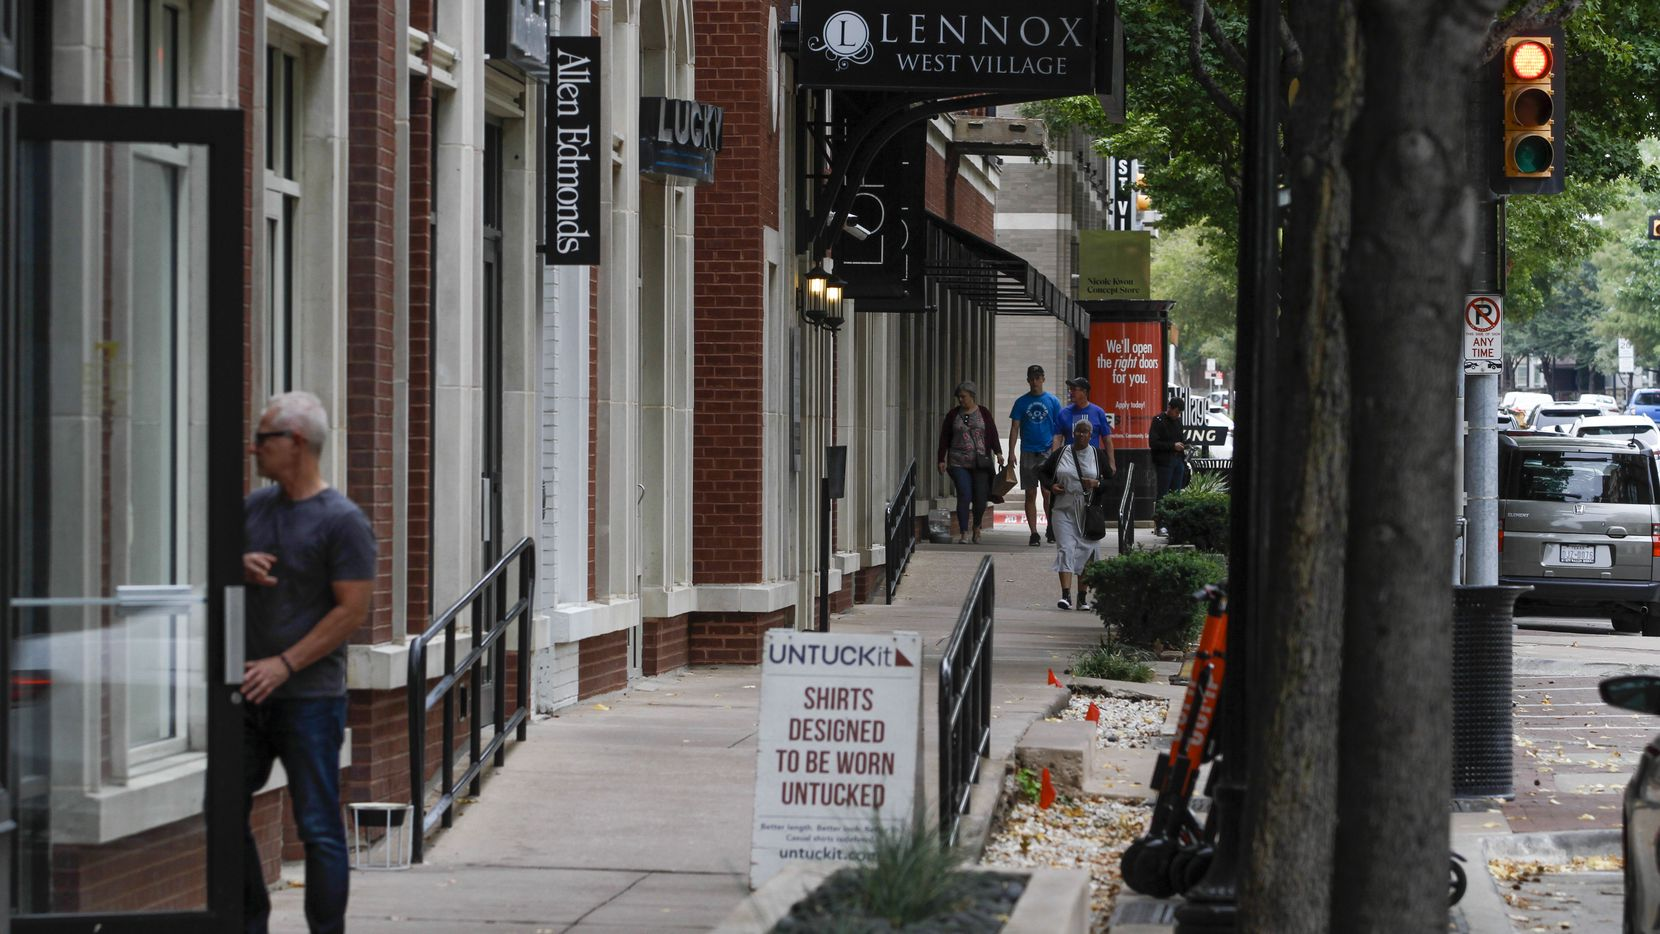 Shoppers wandered into stores and walked down the sidewalk at the West Village in Dallas.